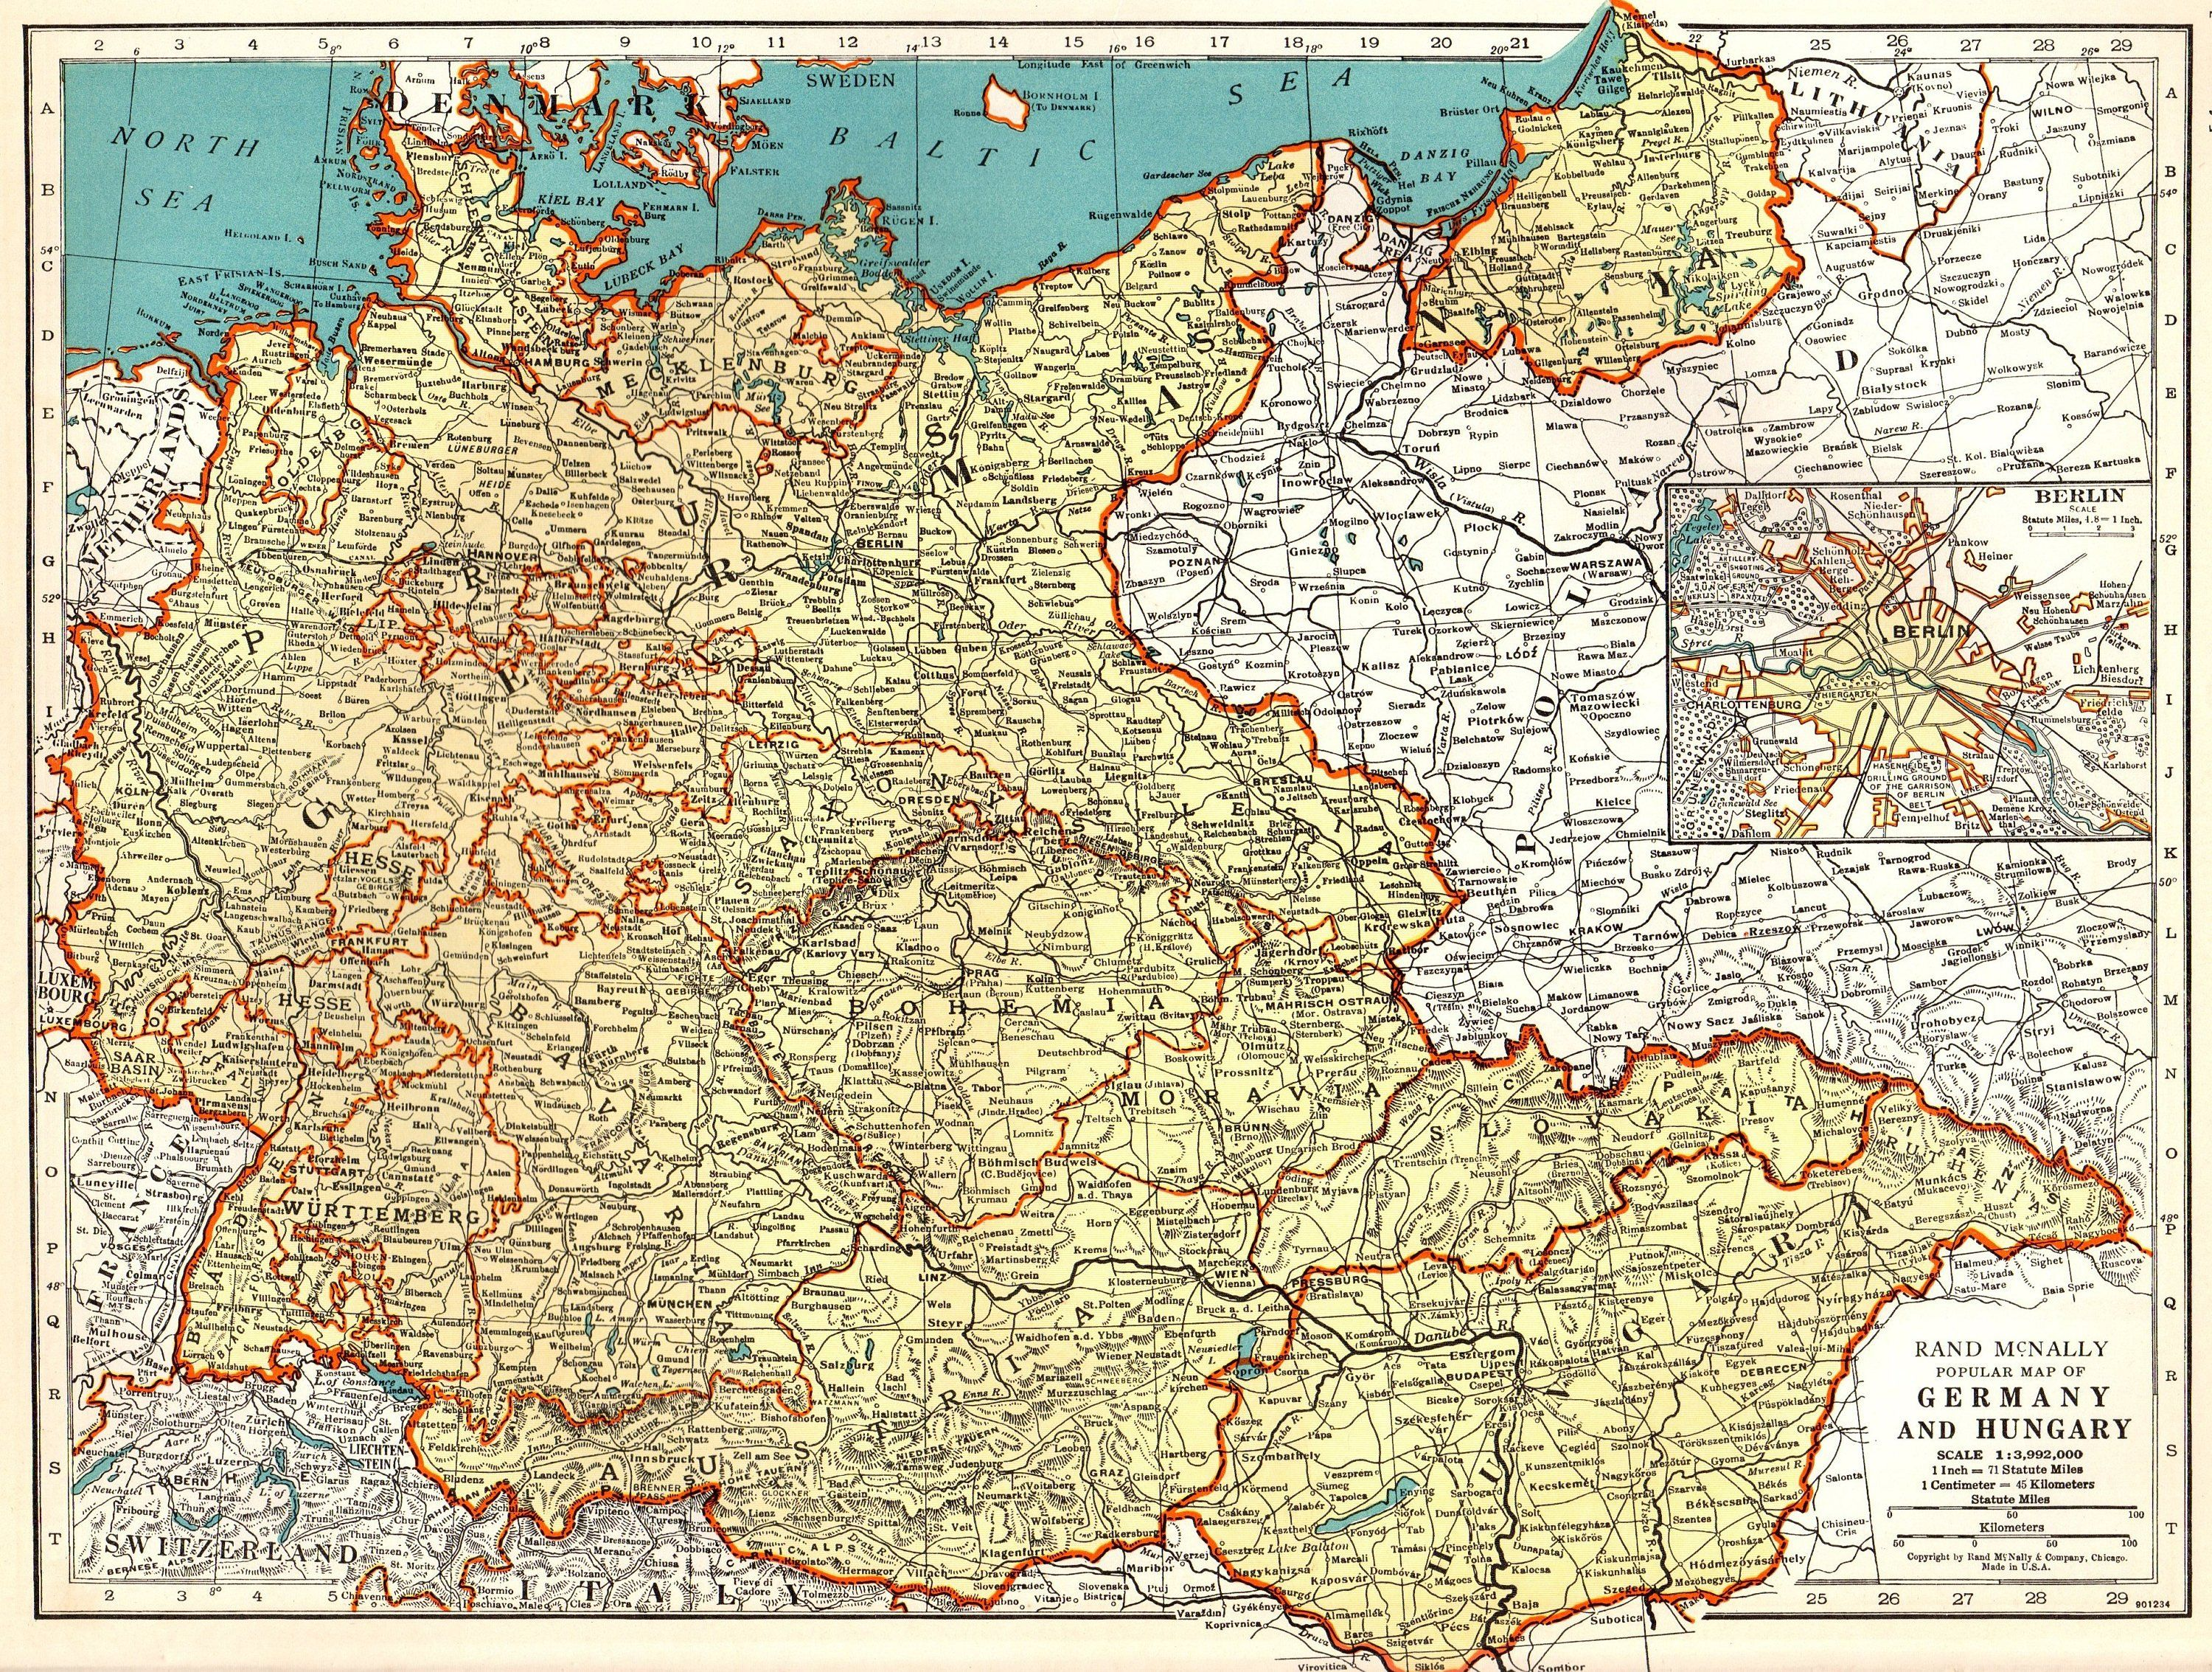 Map Of Germany And Hungary.1940 Vintage Map Of Germany And Hungary Map Gallery Wall Travel